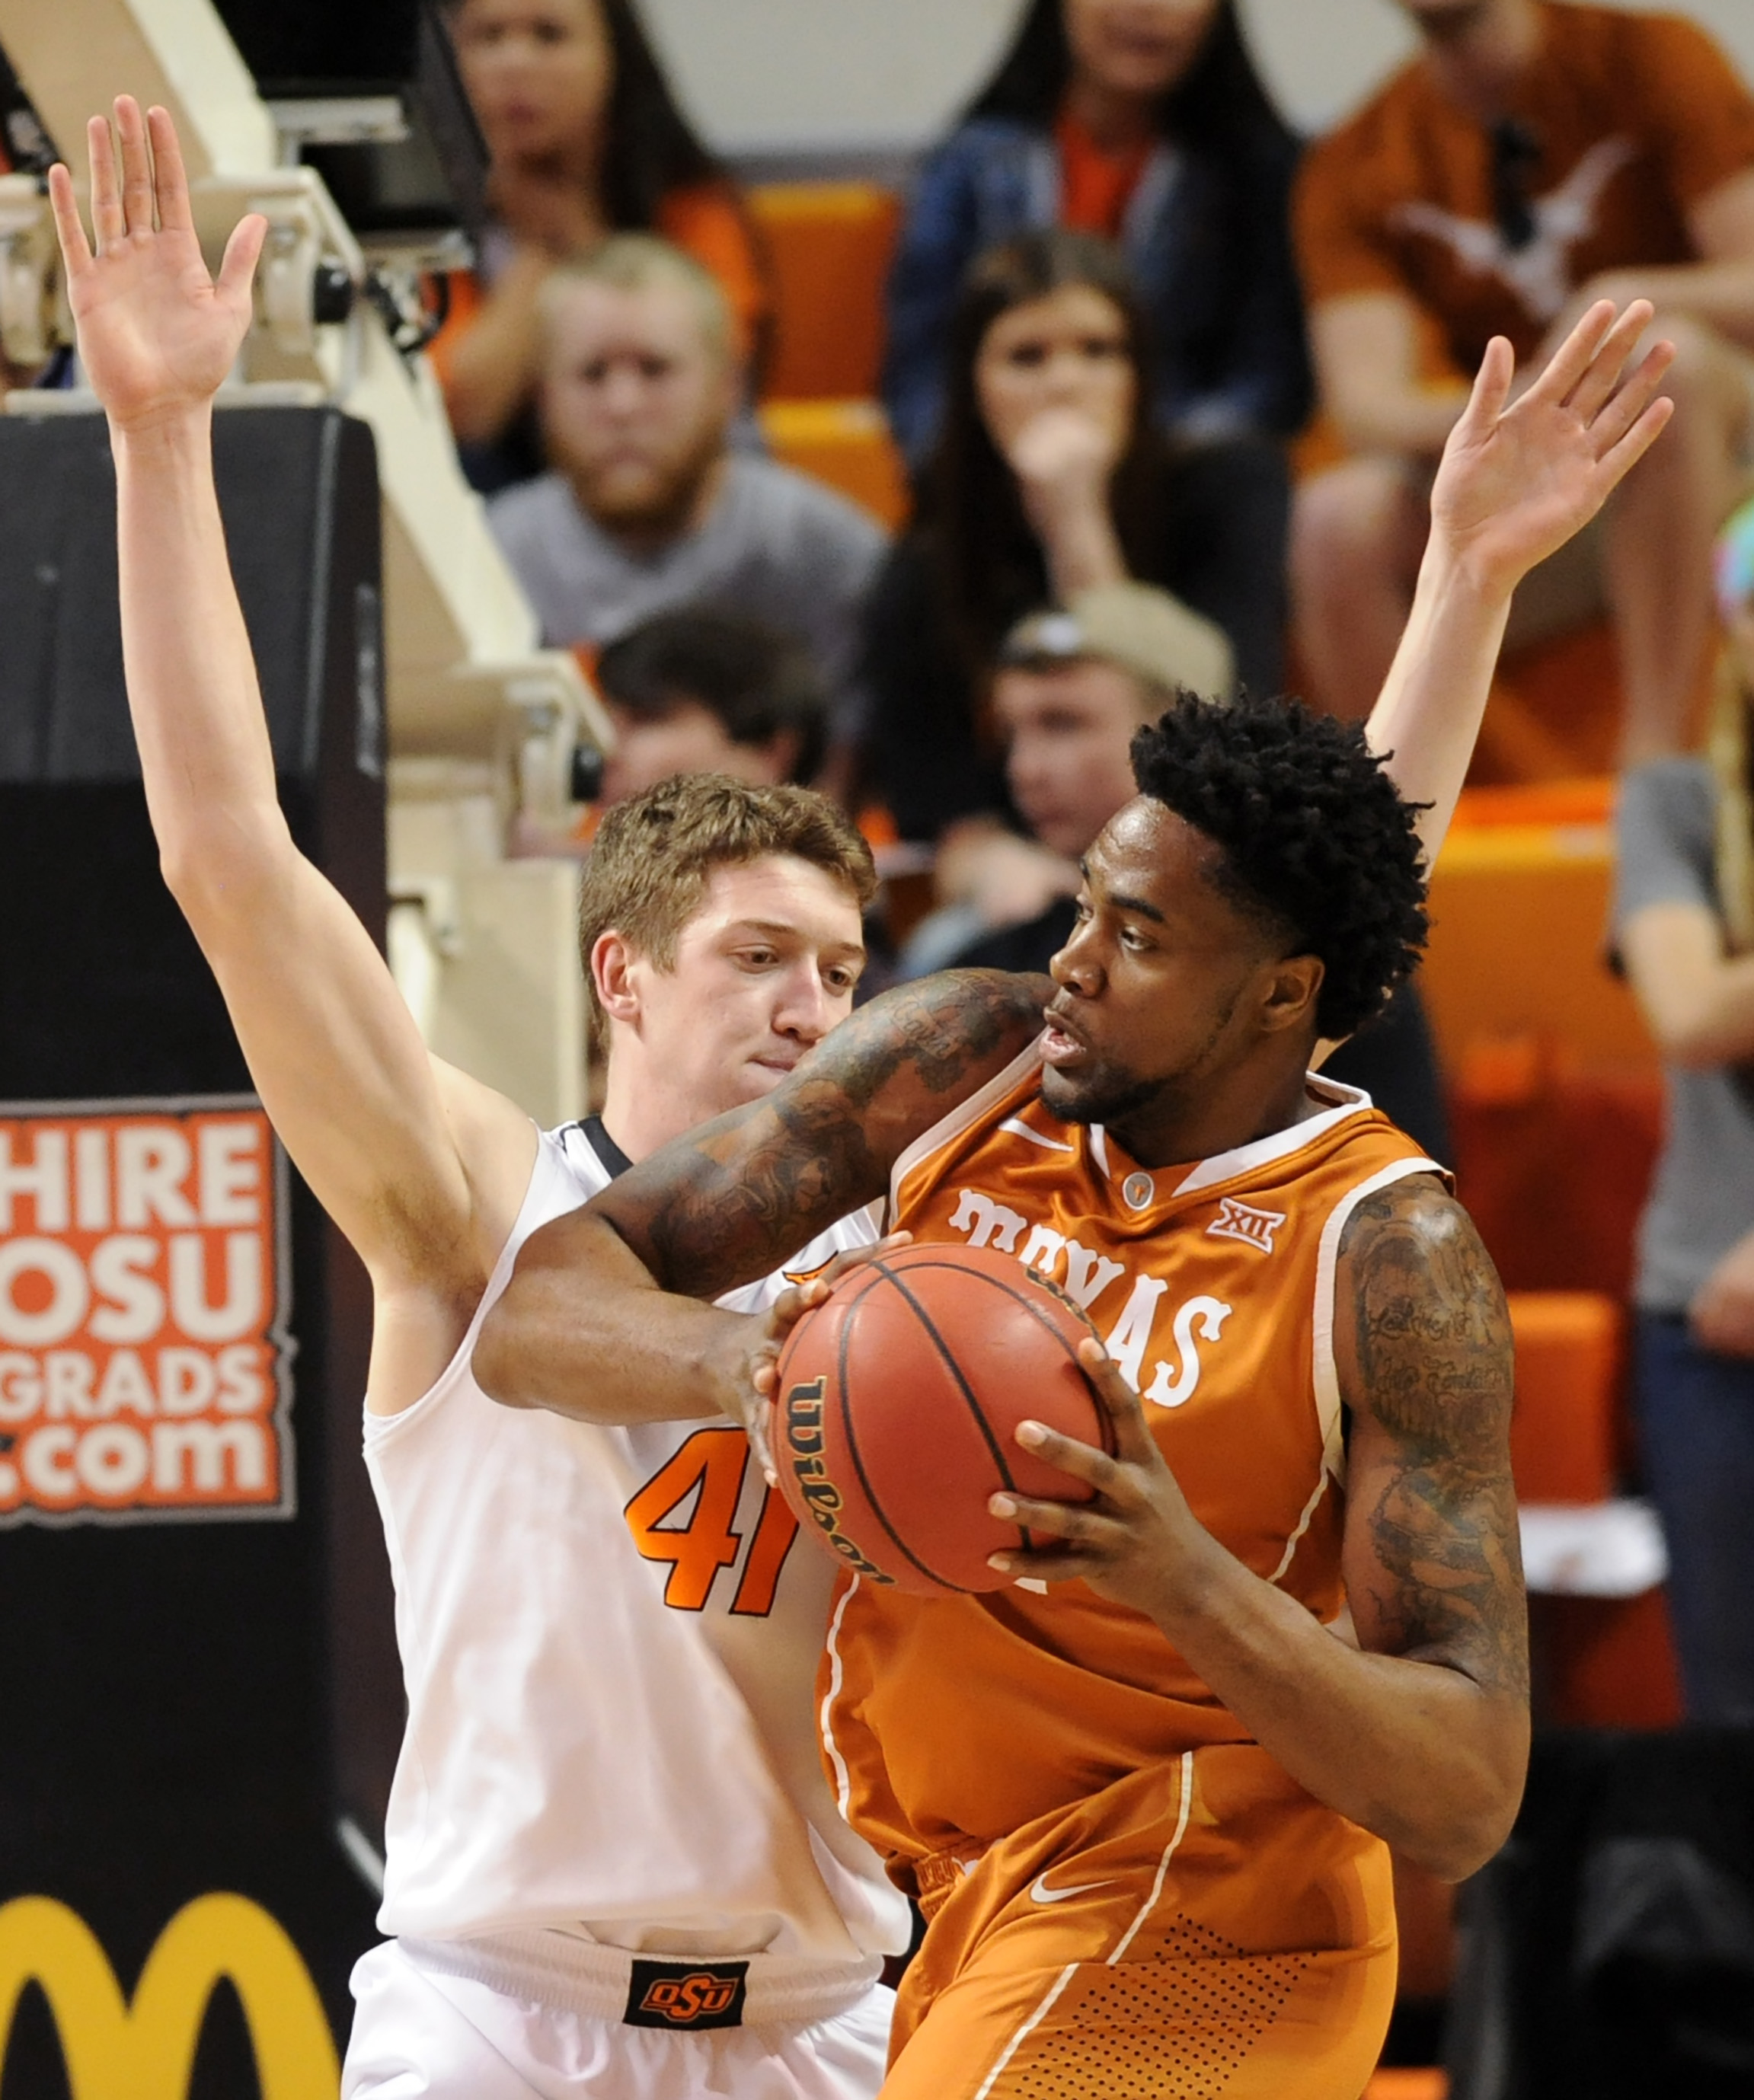 Texas center Prince Ibeh, right, looks for a path around Oklahoma State forward Mitchell Solomon, in the first half of an NCAA college basketball game in Stillwater, Okla., Friday, March. 4, 2016. (AP Photo/Brody Schmidt)